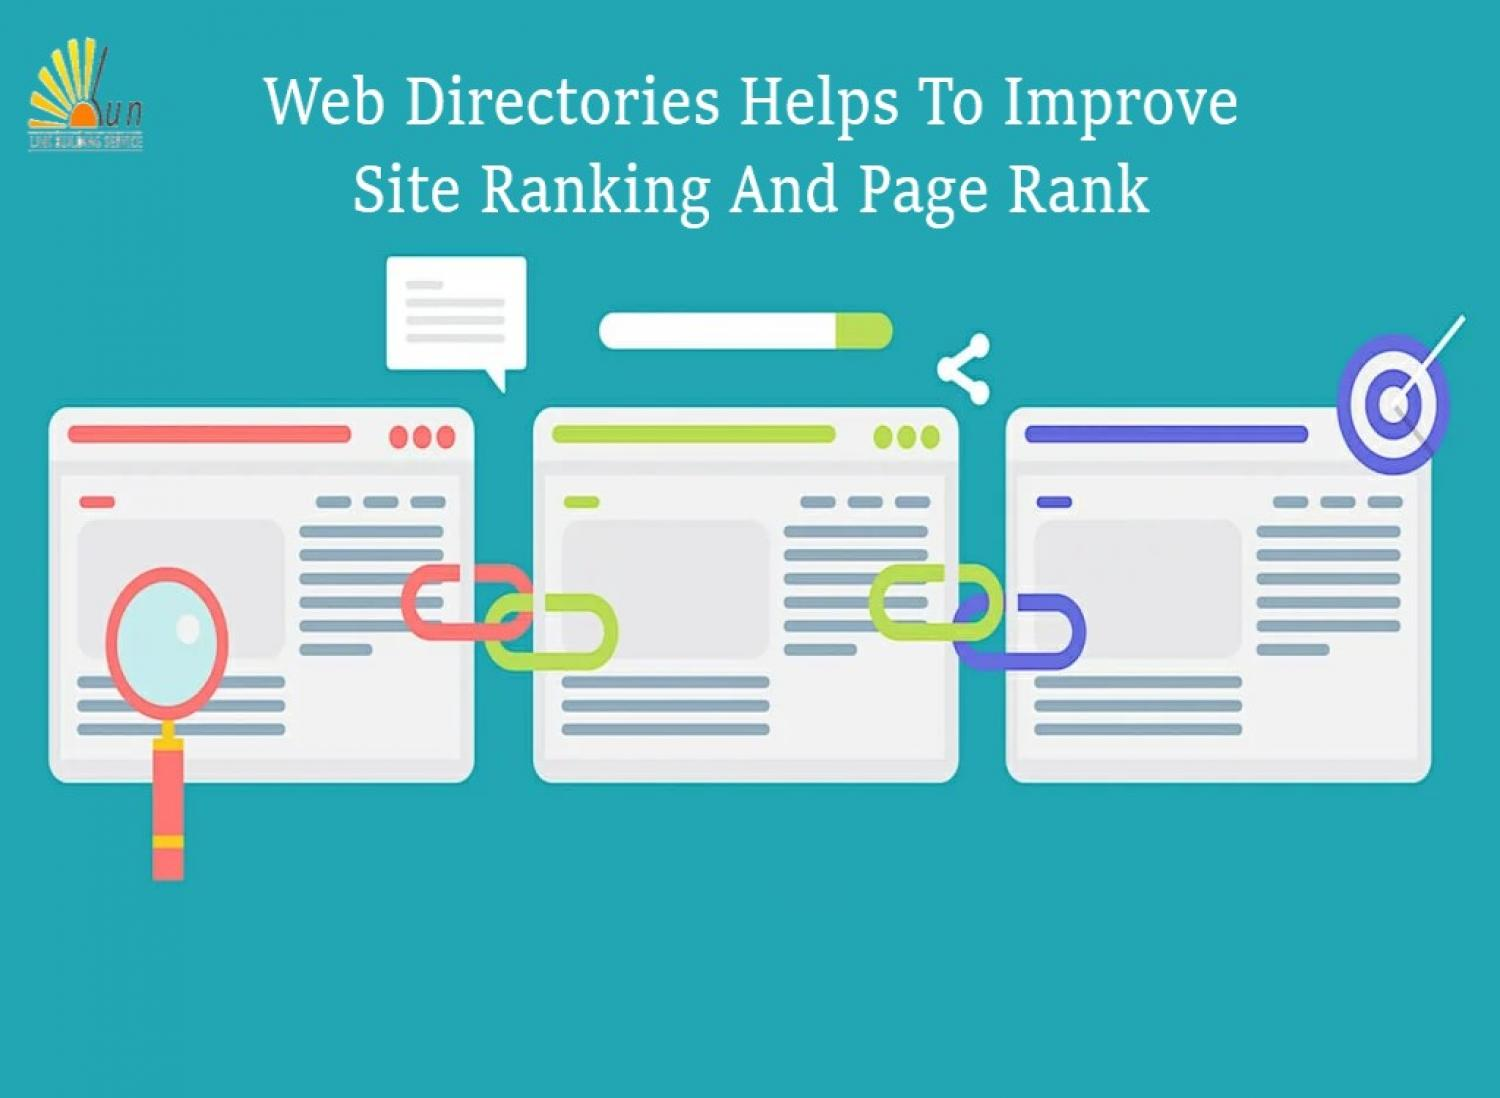 Web Directories Helps To Improve Site Ranking And Page Rank